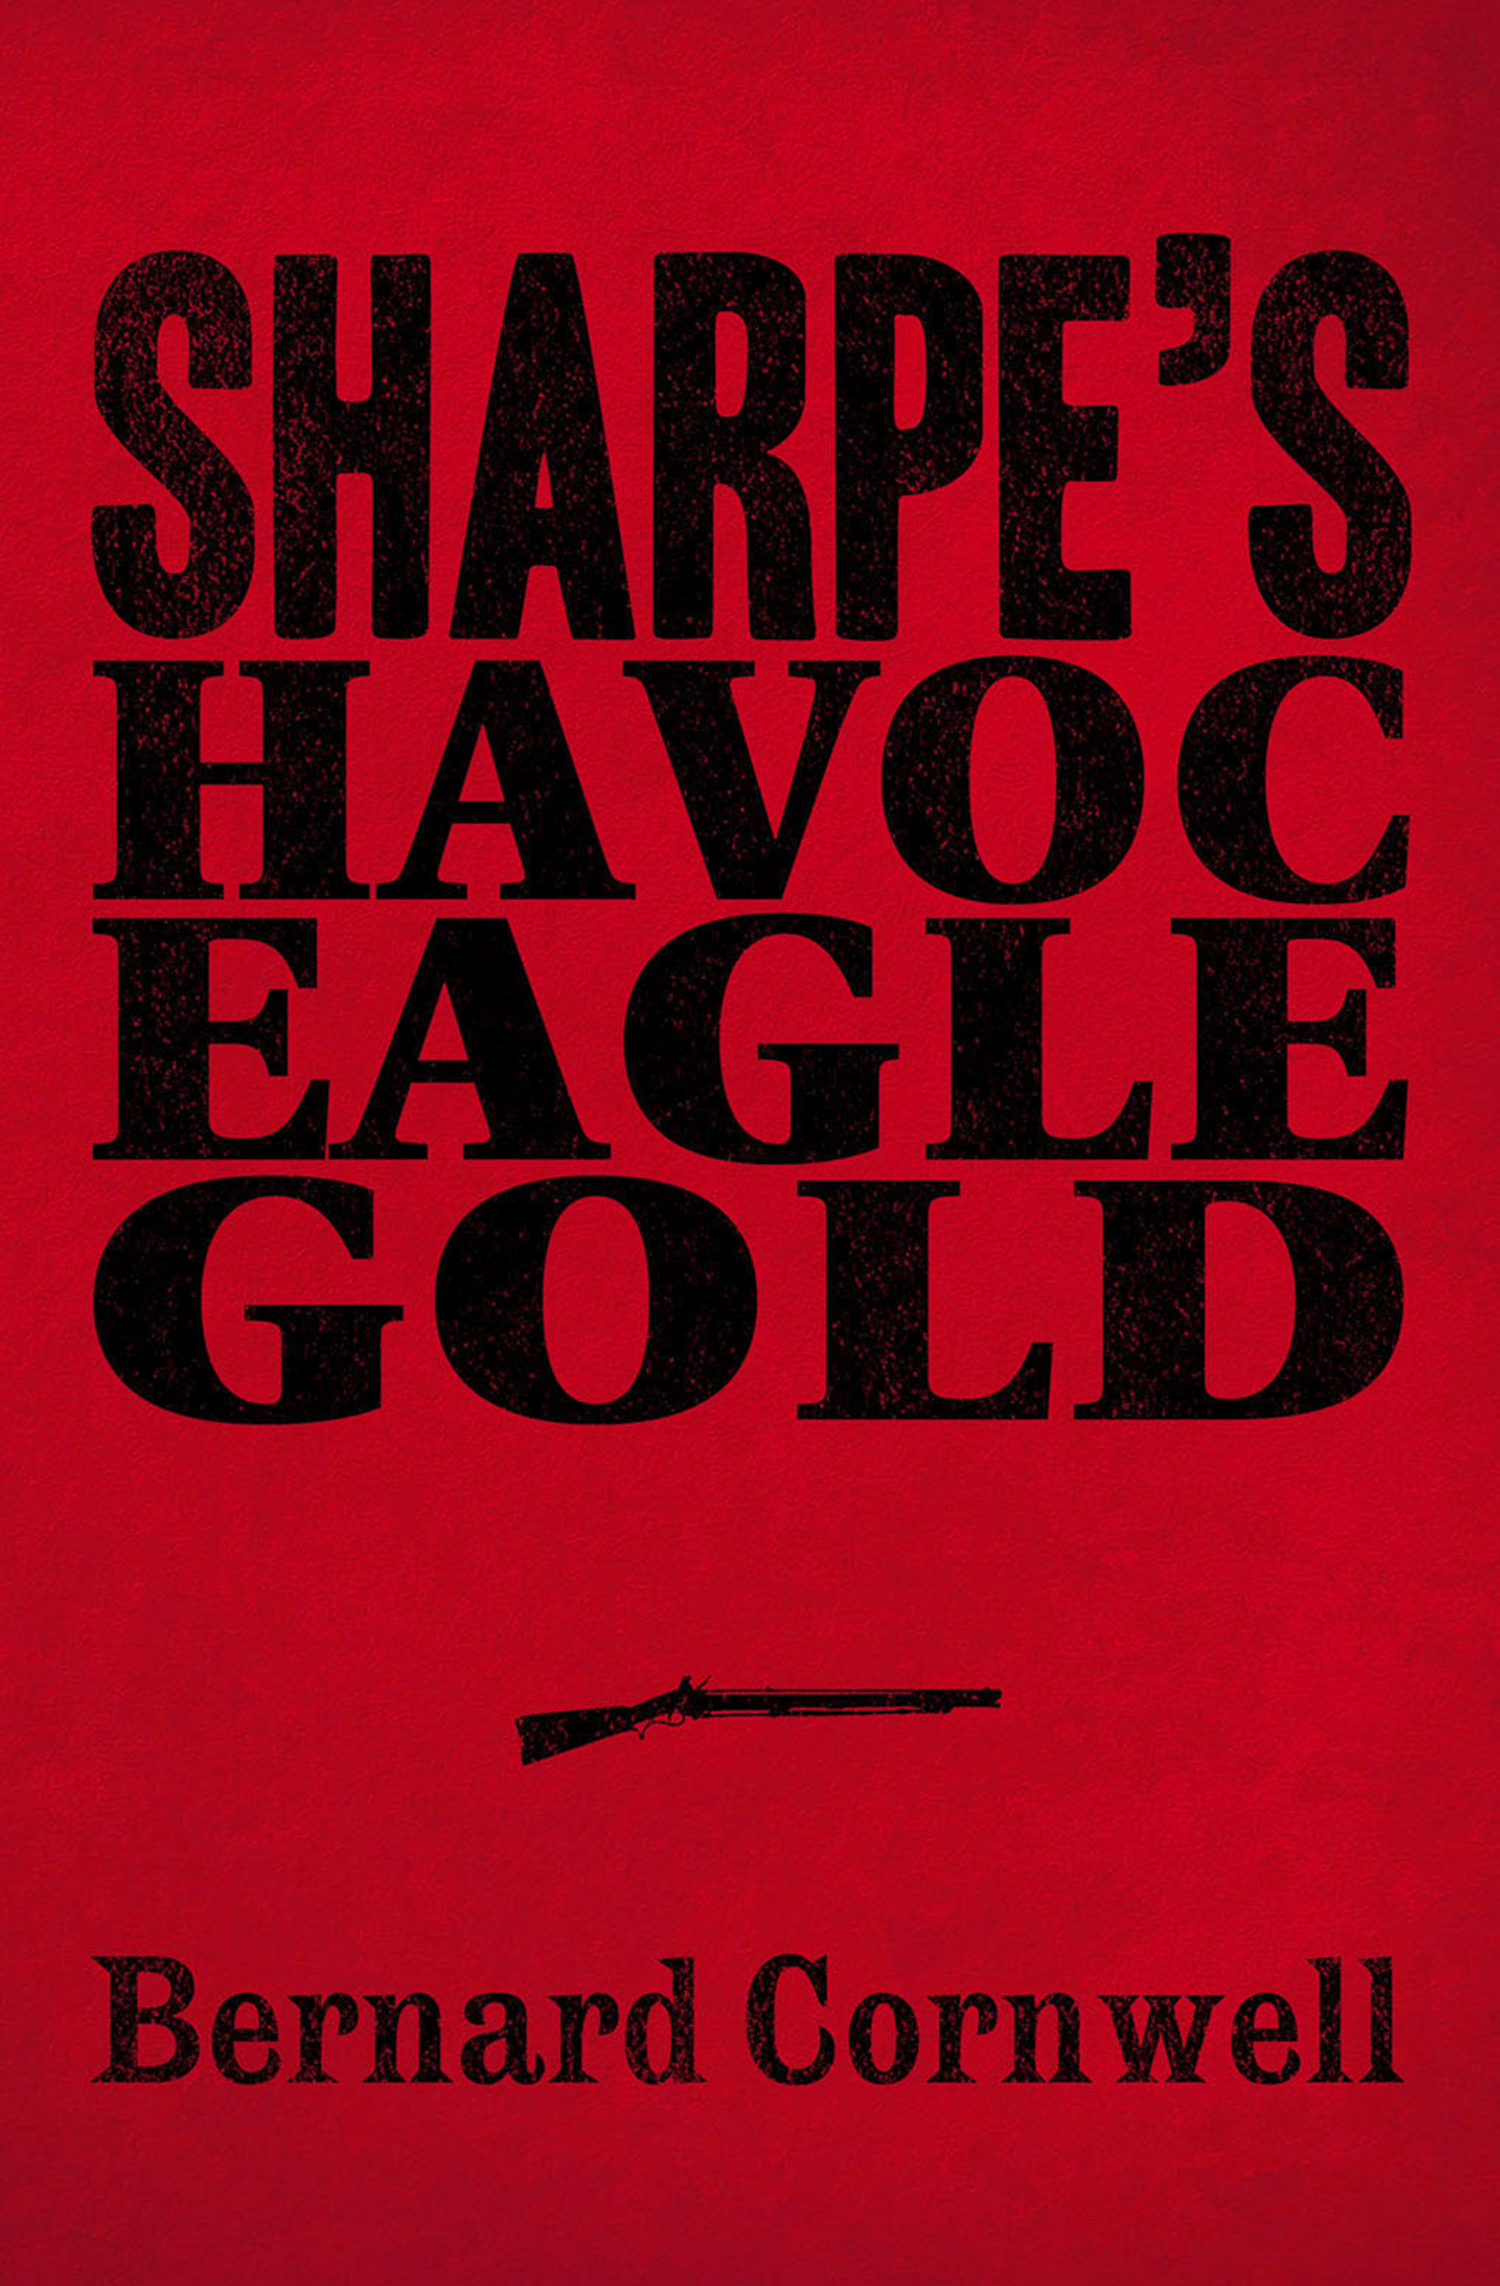 Sharpe 3-Book Collection 2: Sharpe's Havoc, Sharpe's Eagle, Sharpe's Gold